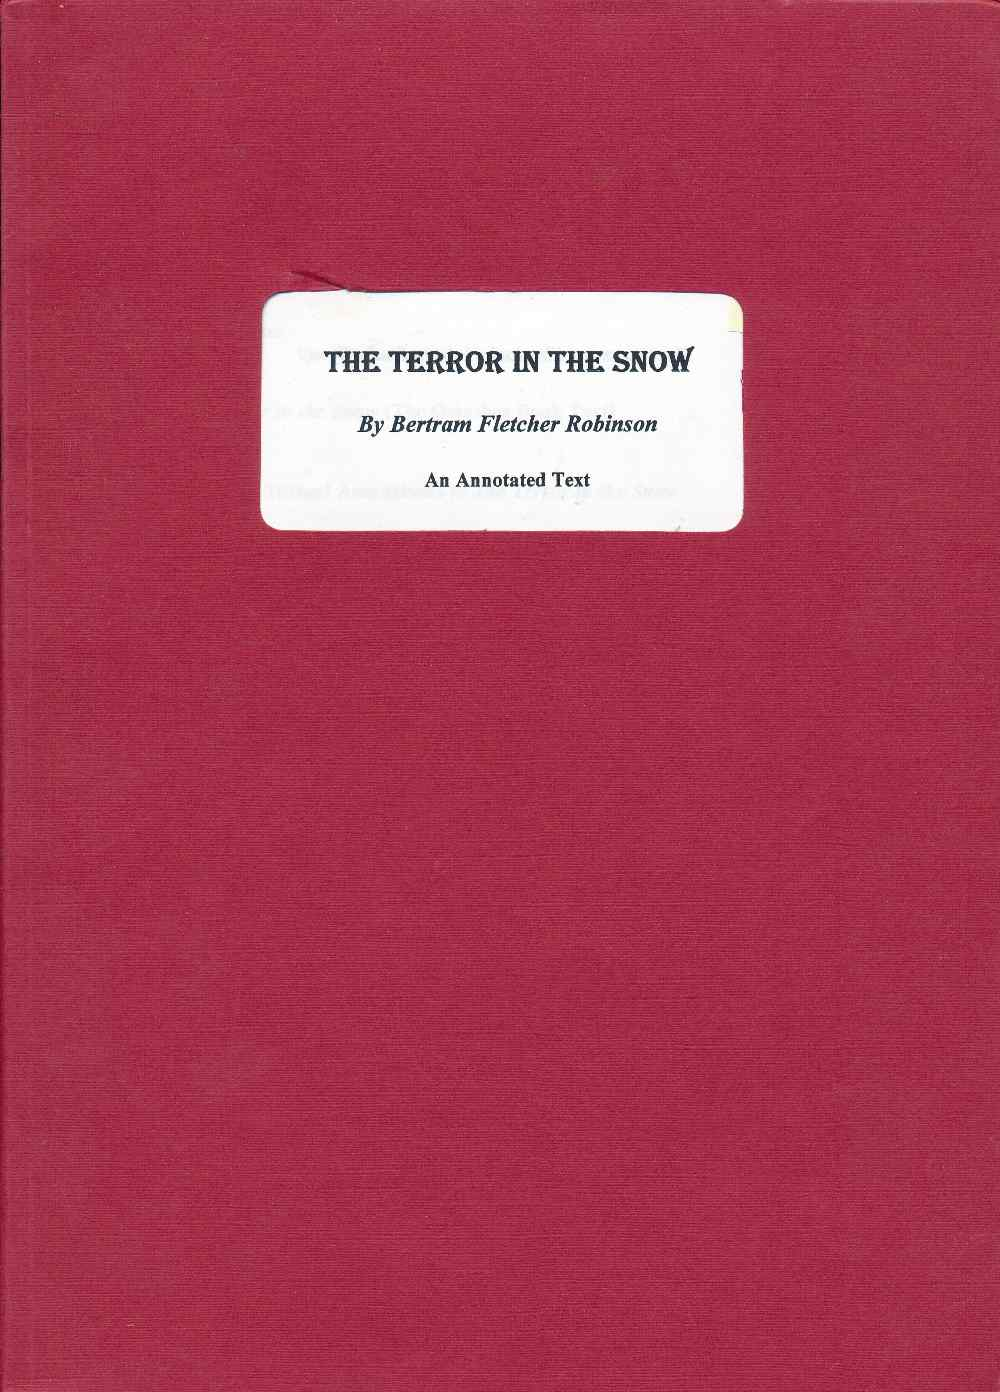 The terror in the snow